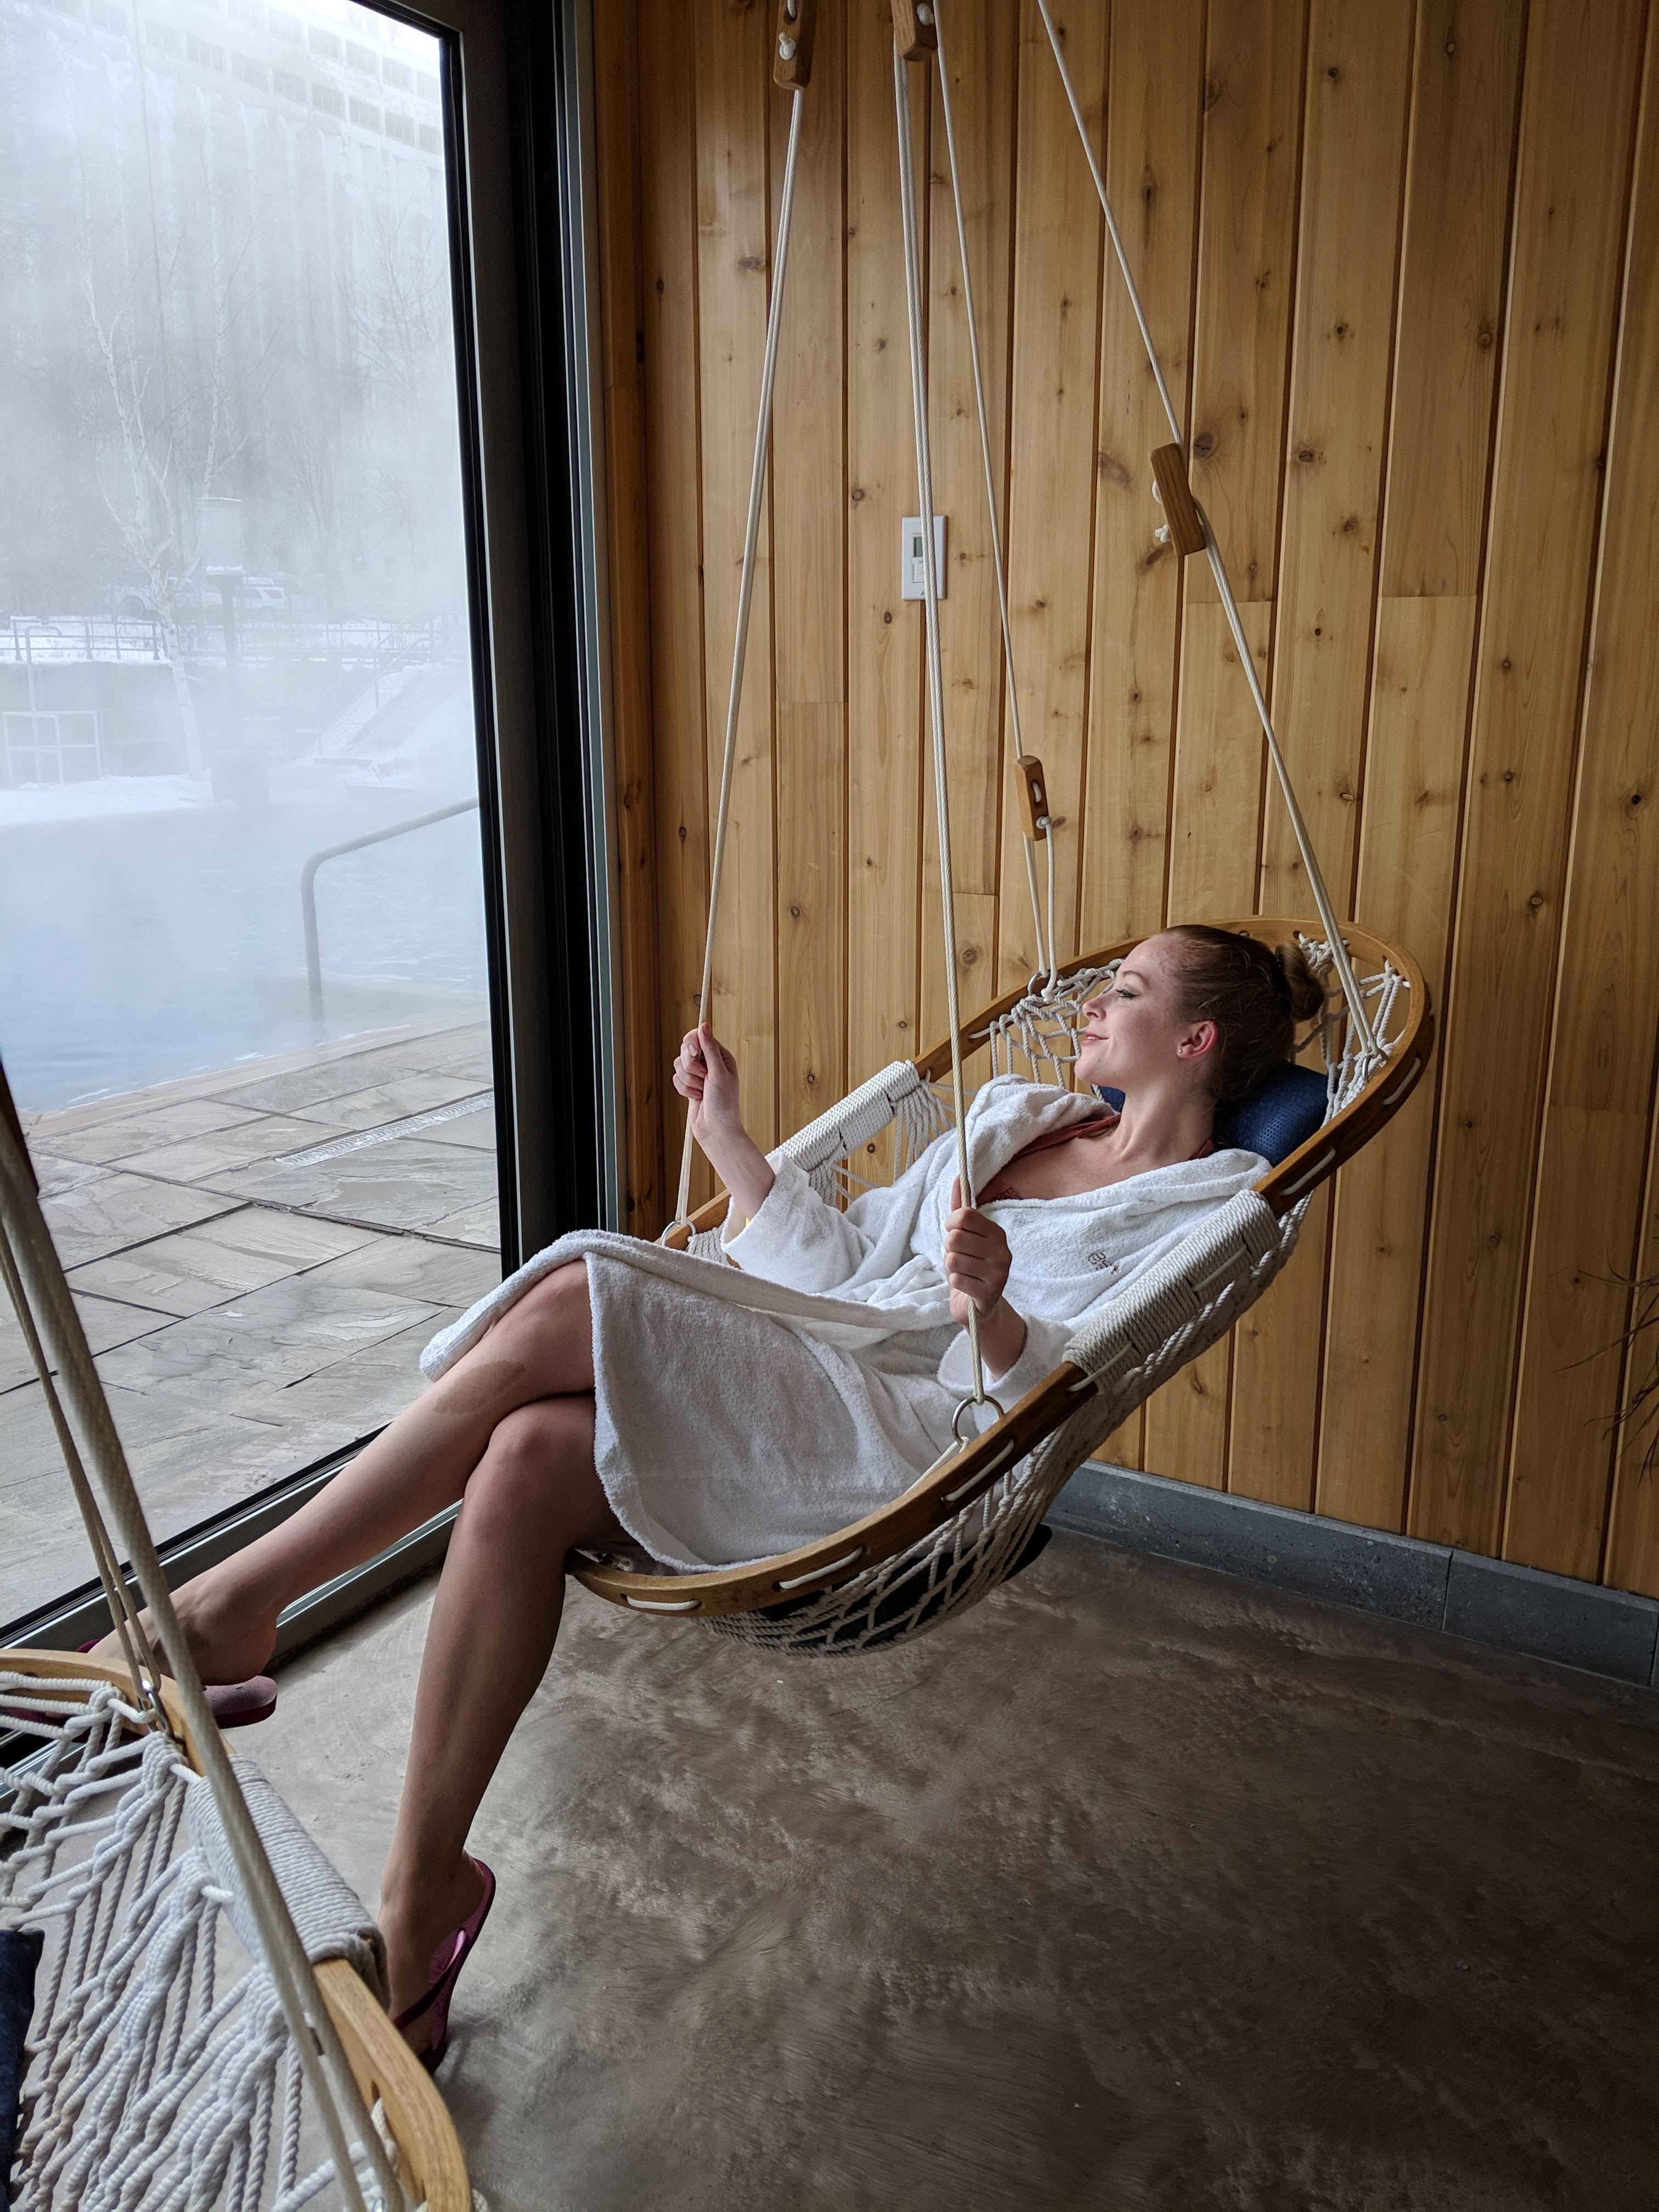 Bota Bota Spa Review - a chic floating spa in an old boat in Montreal's historic old port offers great views and a cozy setting.